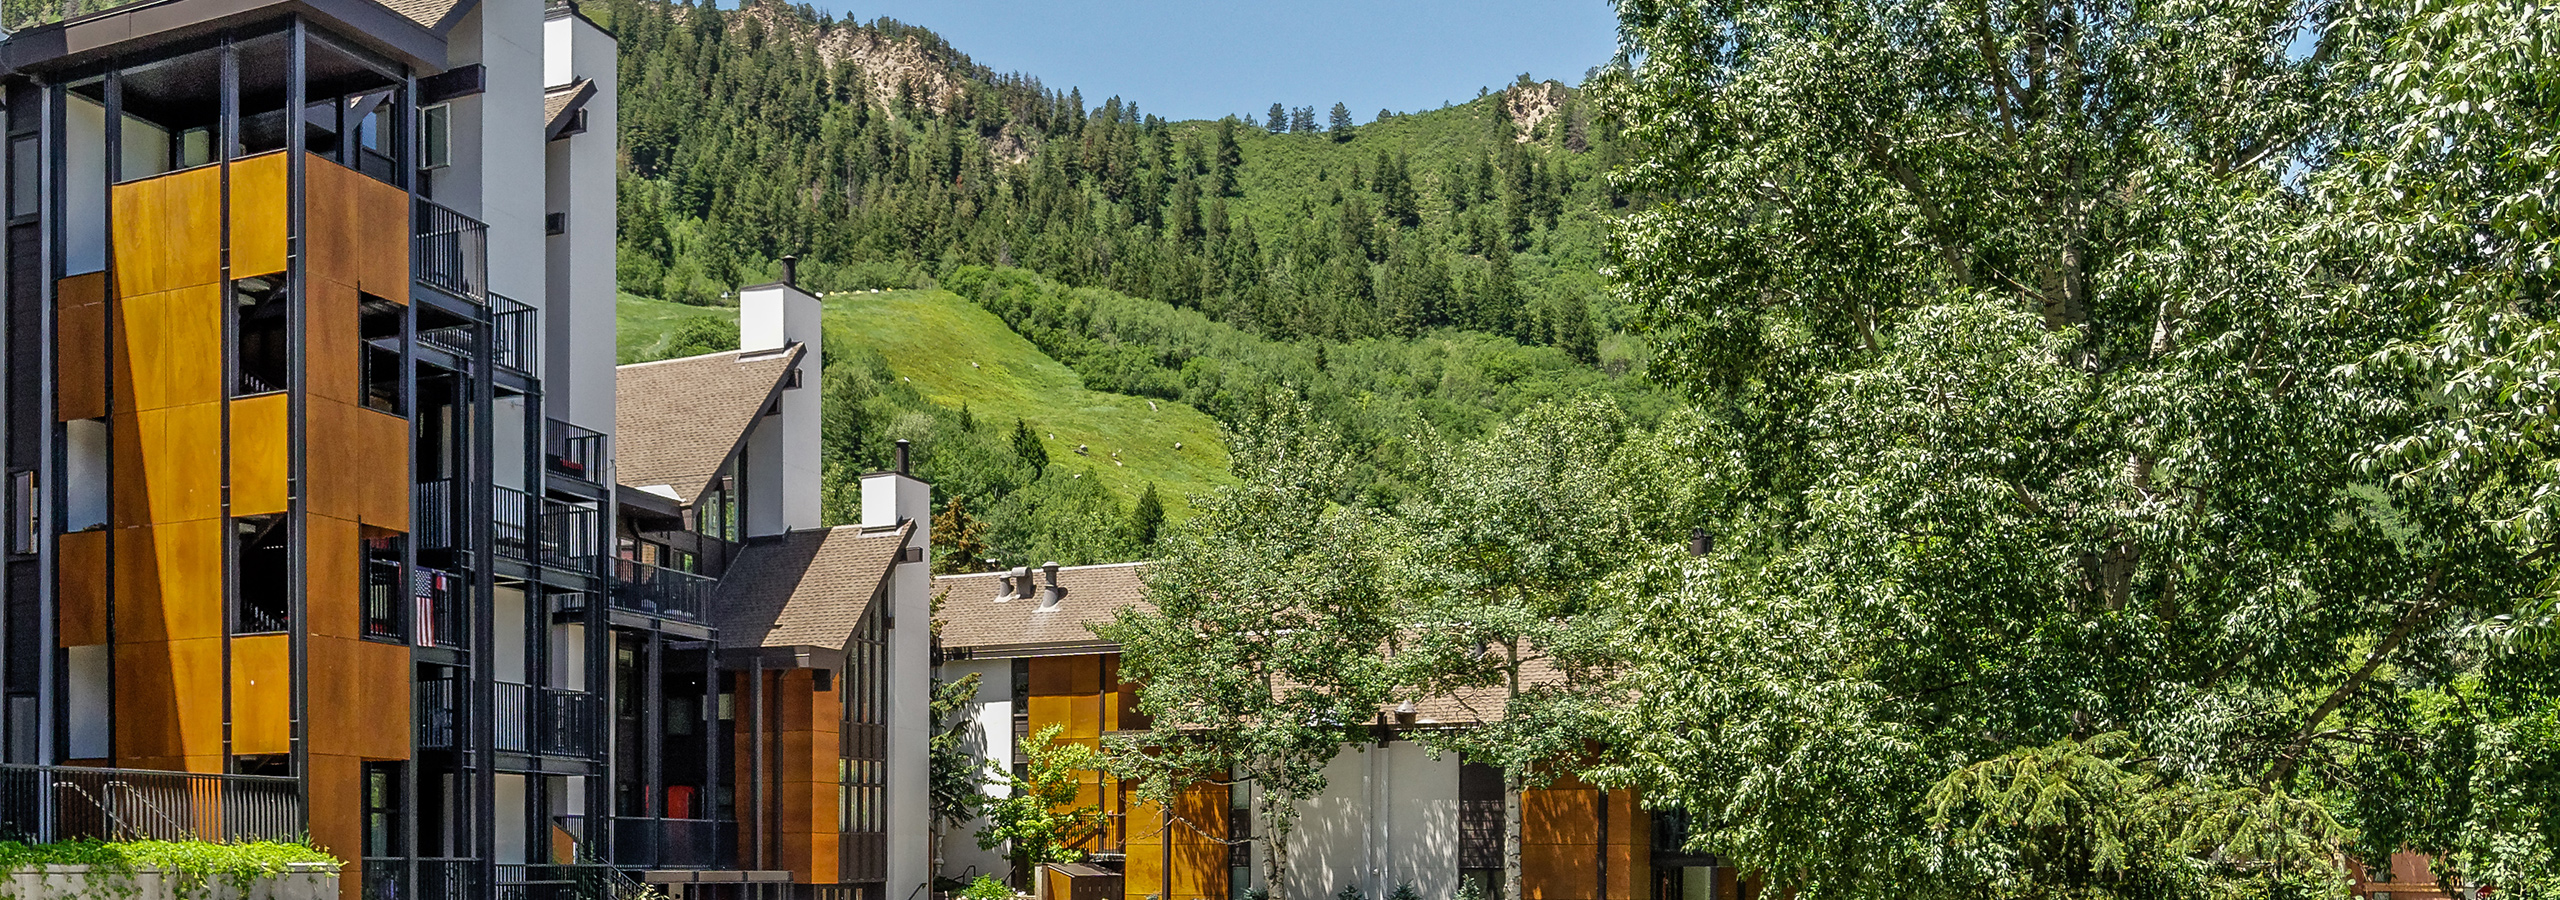 Fifth Avenue Condo Rentals in Aspen